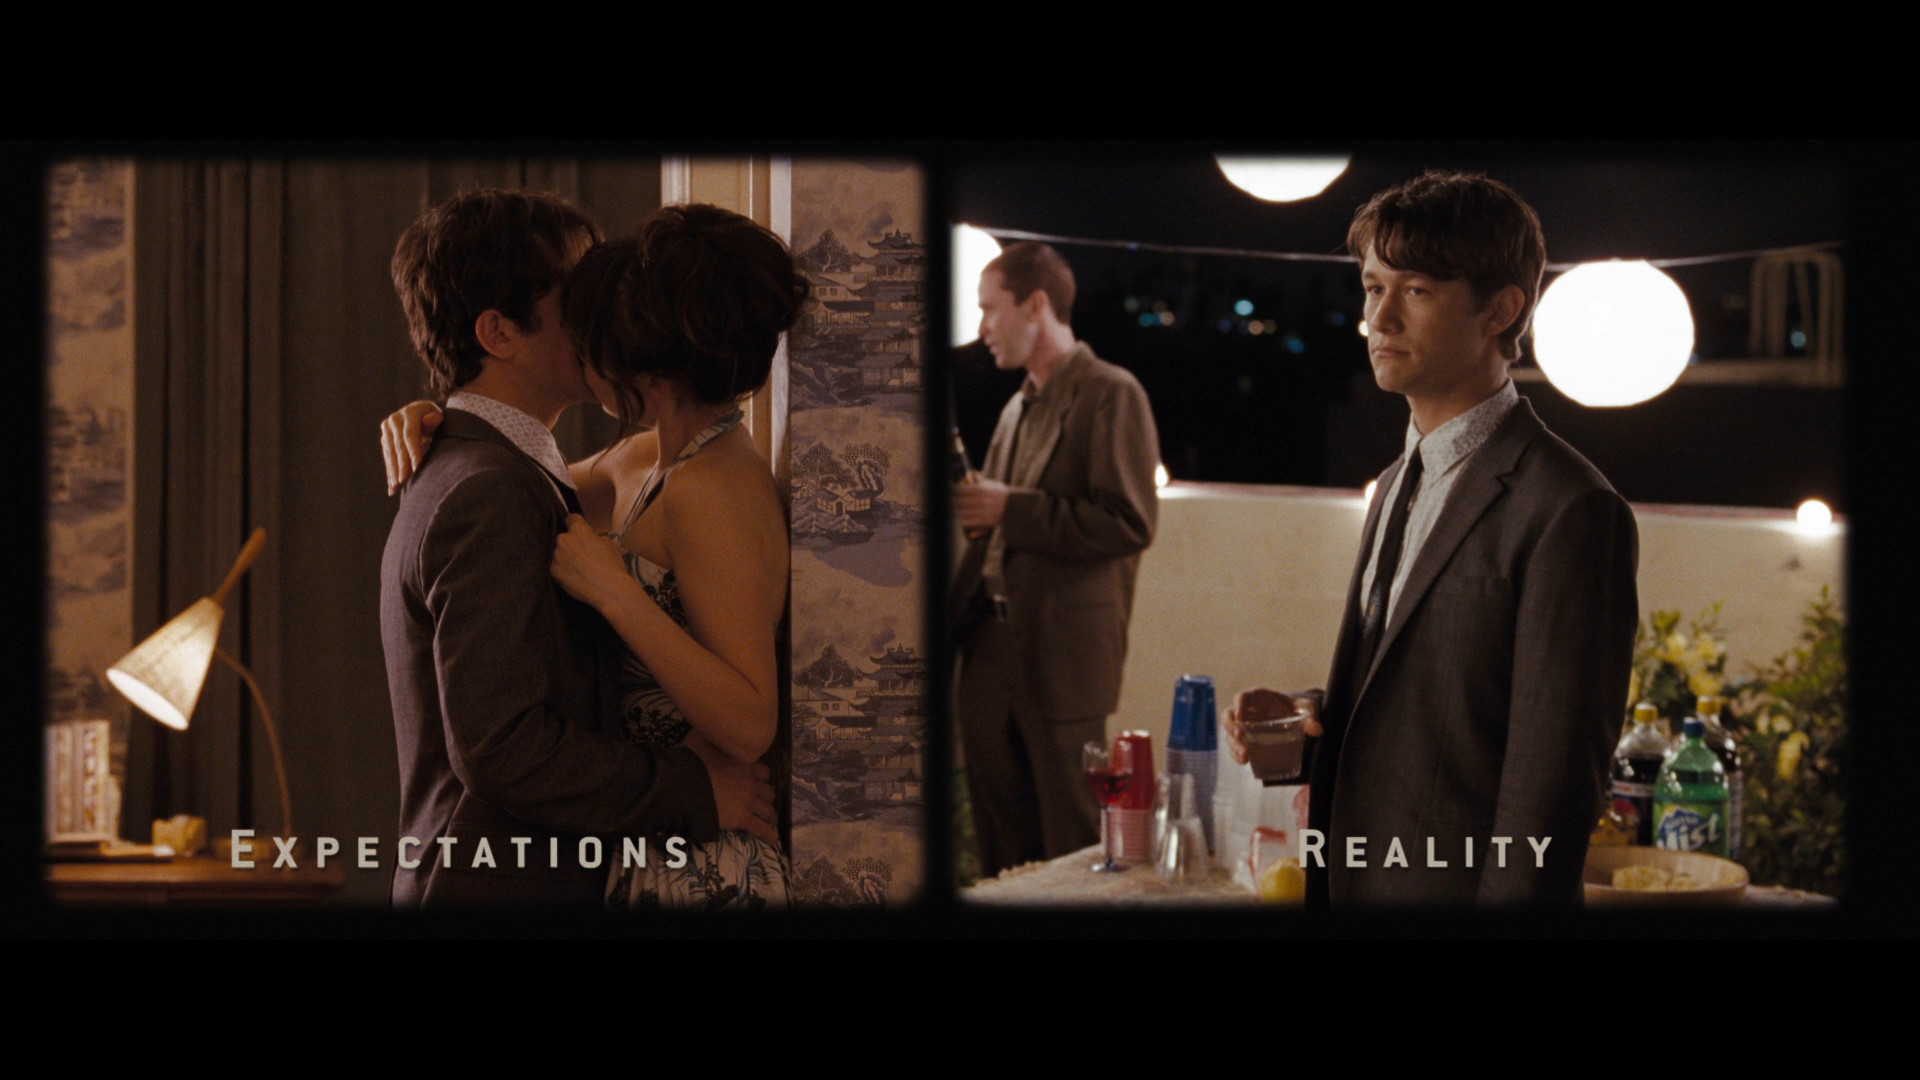 500 days of summer quotes 2 7 topics